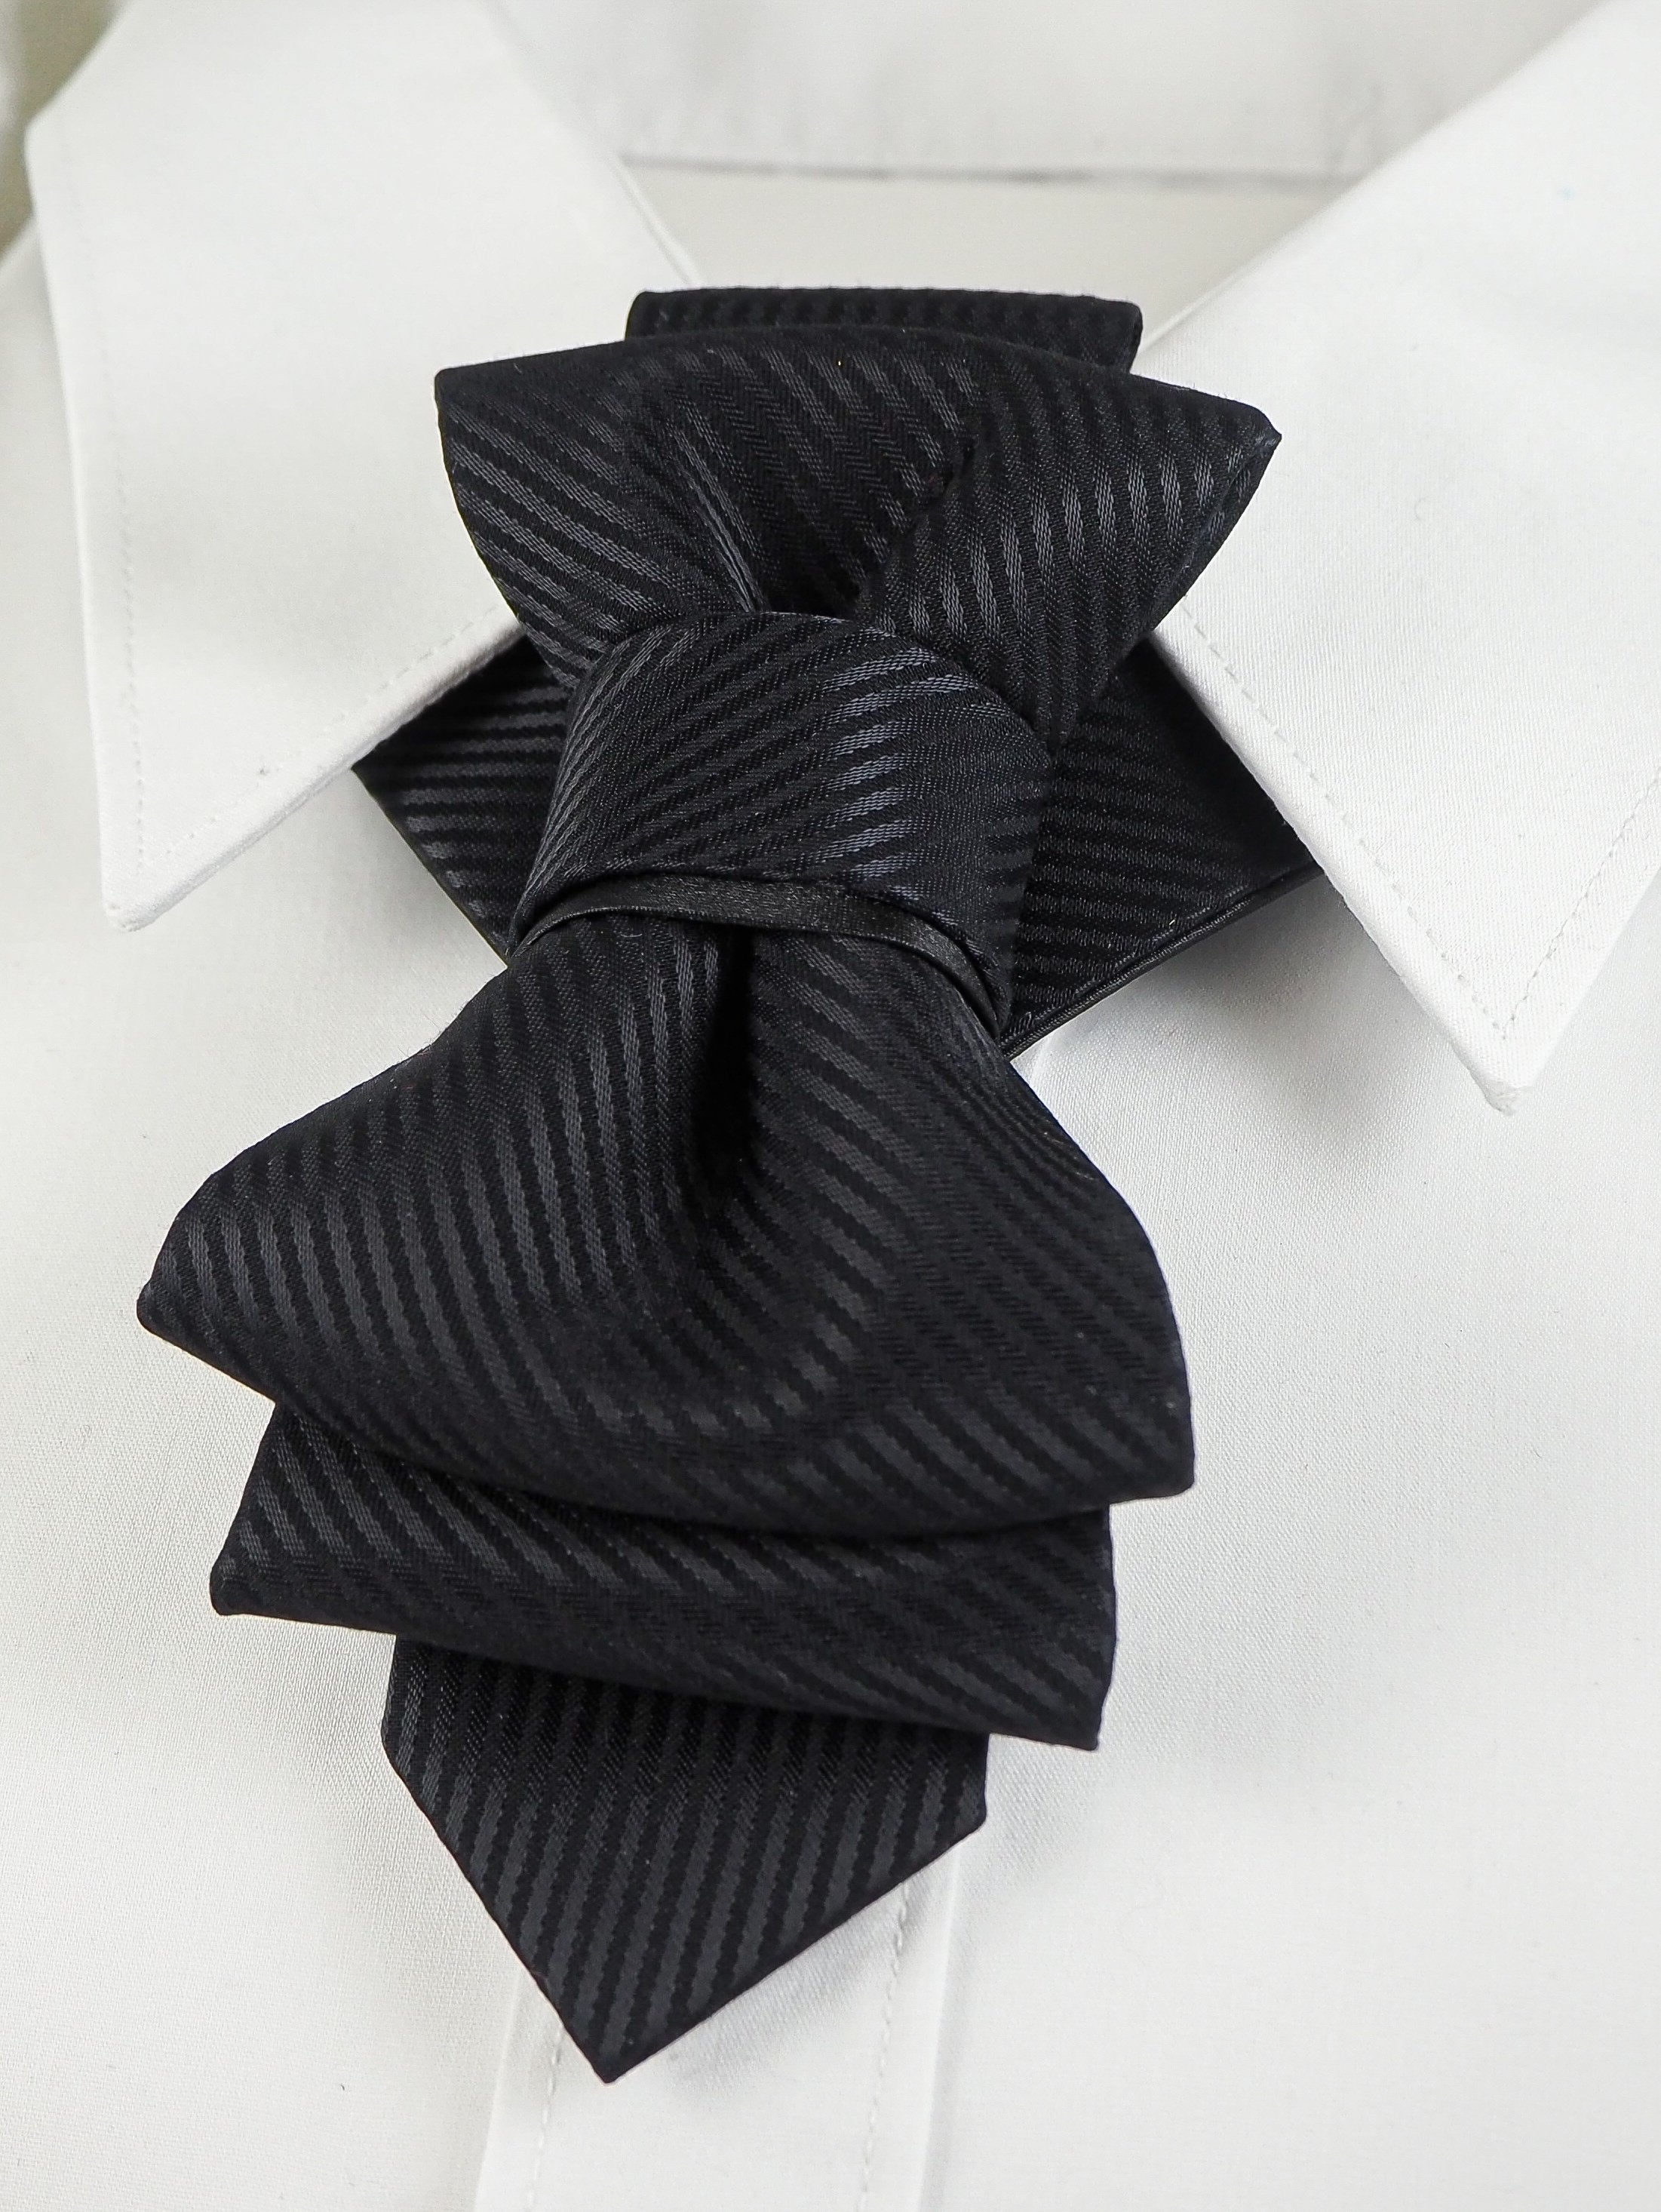 Tie for the wedding suite